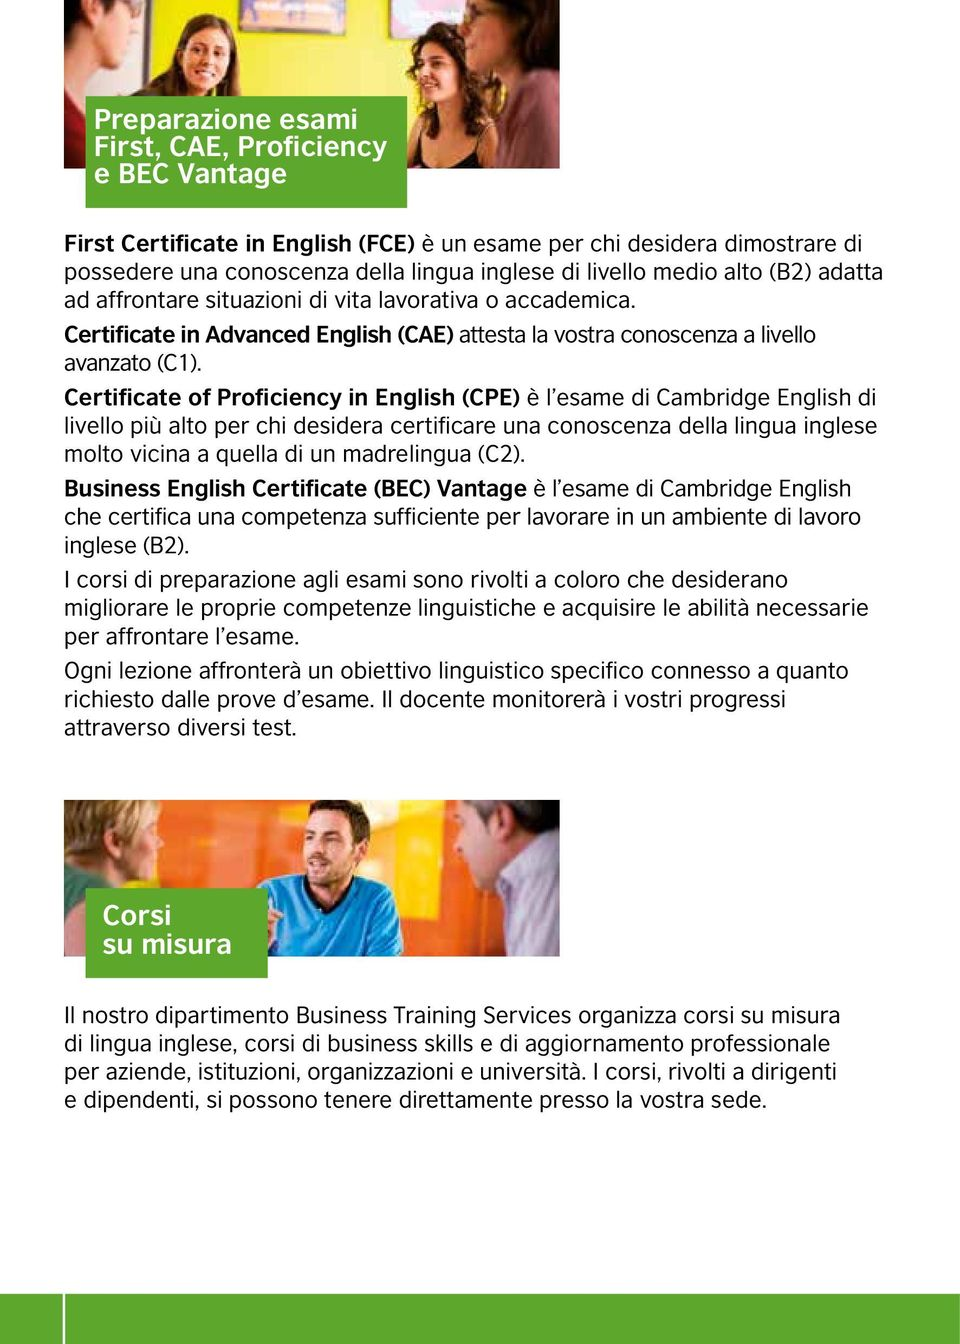 Certificate of Proficiency in English (CPE) è l esame di Cambridge English di livello più alto per chi desidera certificare una conoscenza della lingua inglese molto vicina a quella di un madrelingua